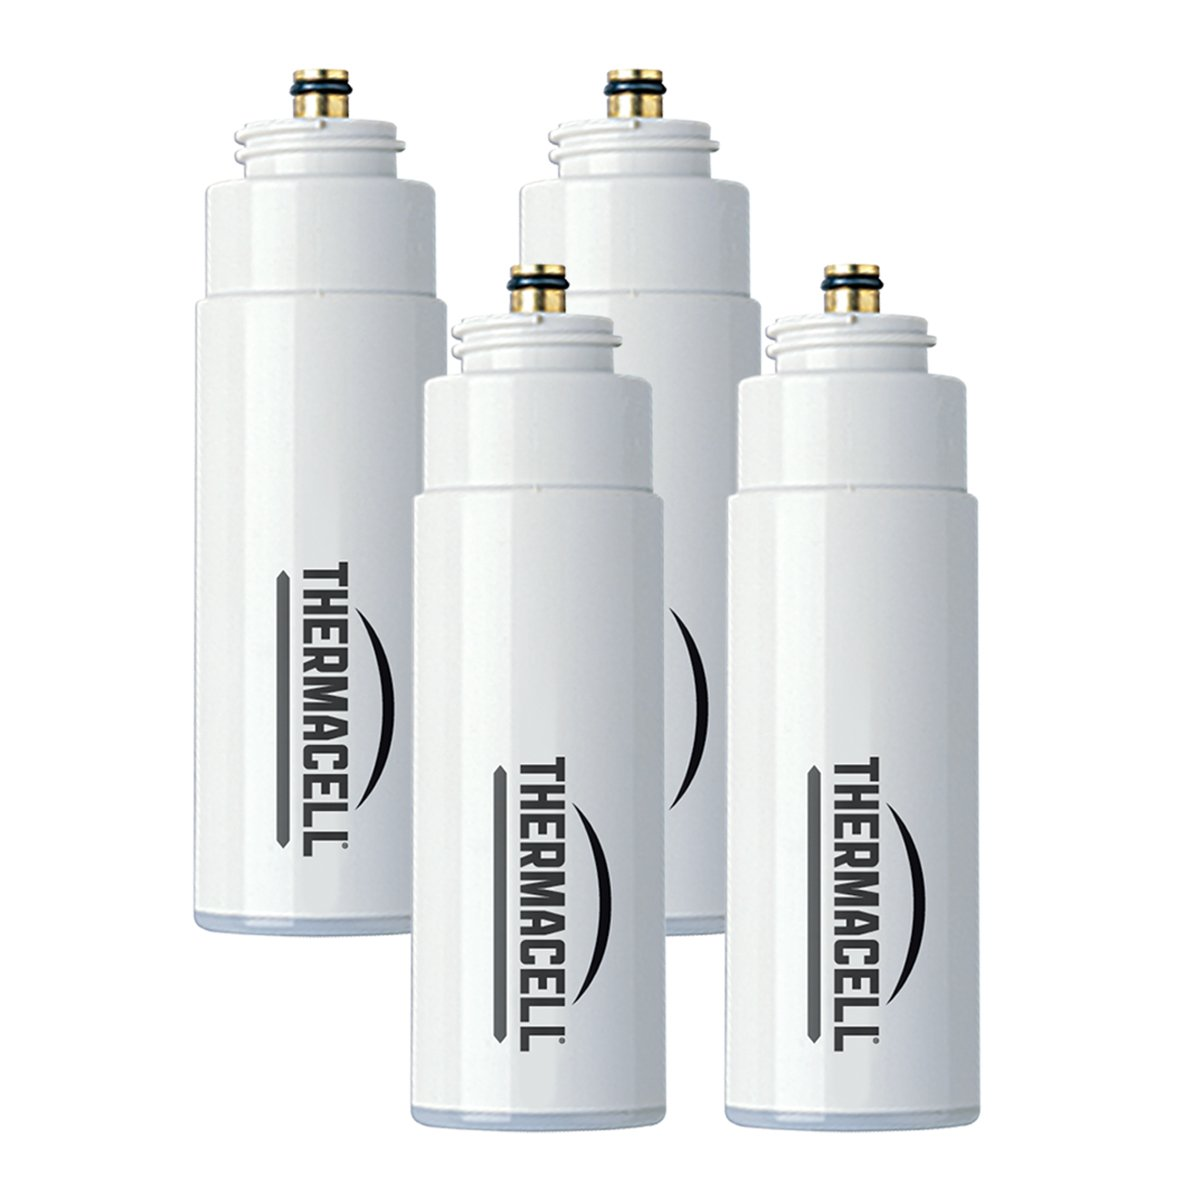 Thermacell C-4 Fuel Cartridge Refill, 4-Pack by Thermacell (Image #2)